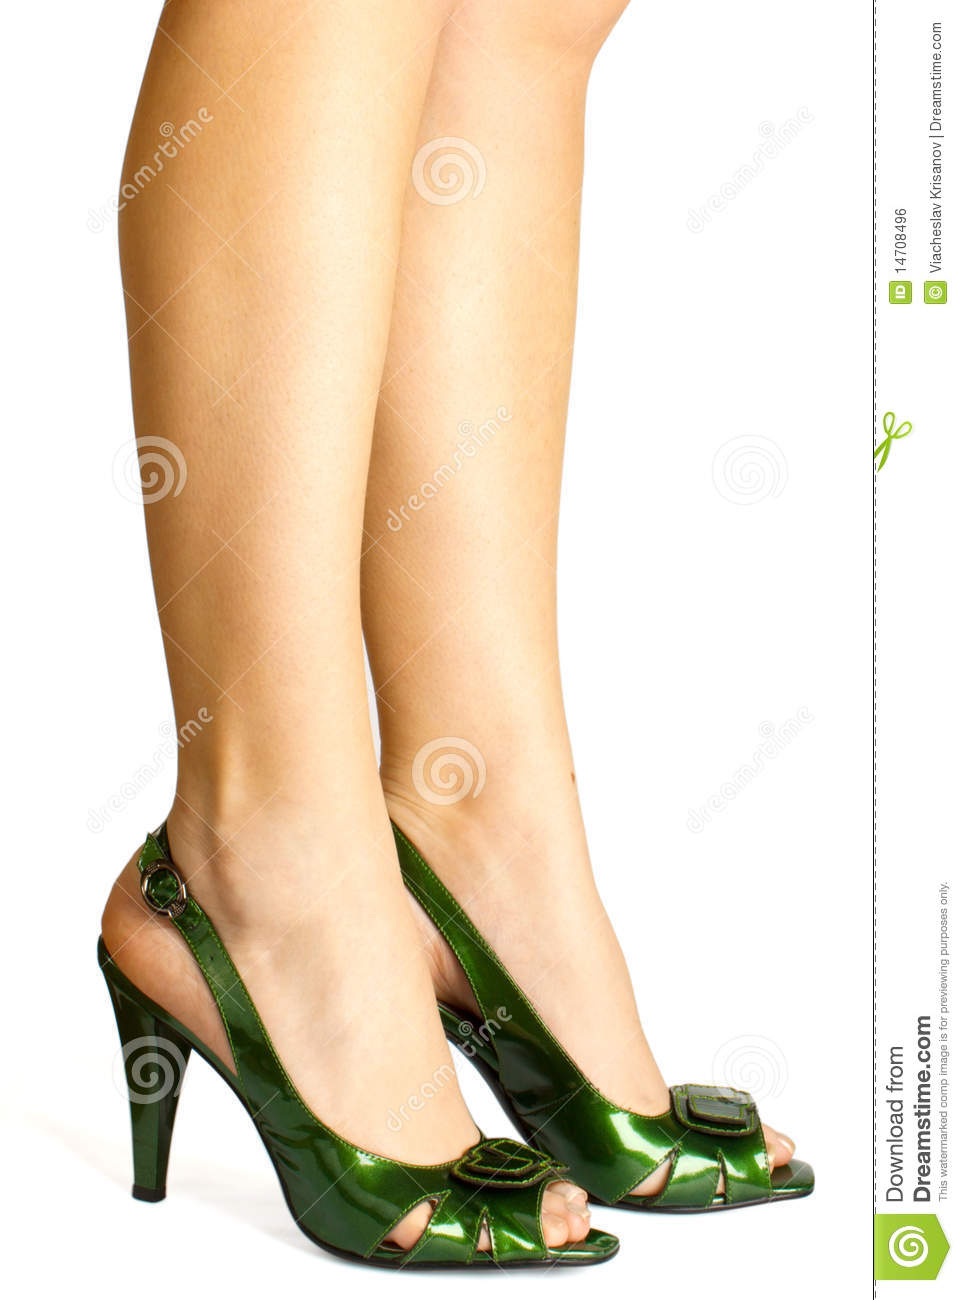 Sexy Green Leather High Heels Stilettos Shoes Royalty Free Stock